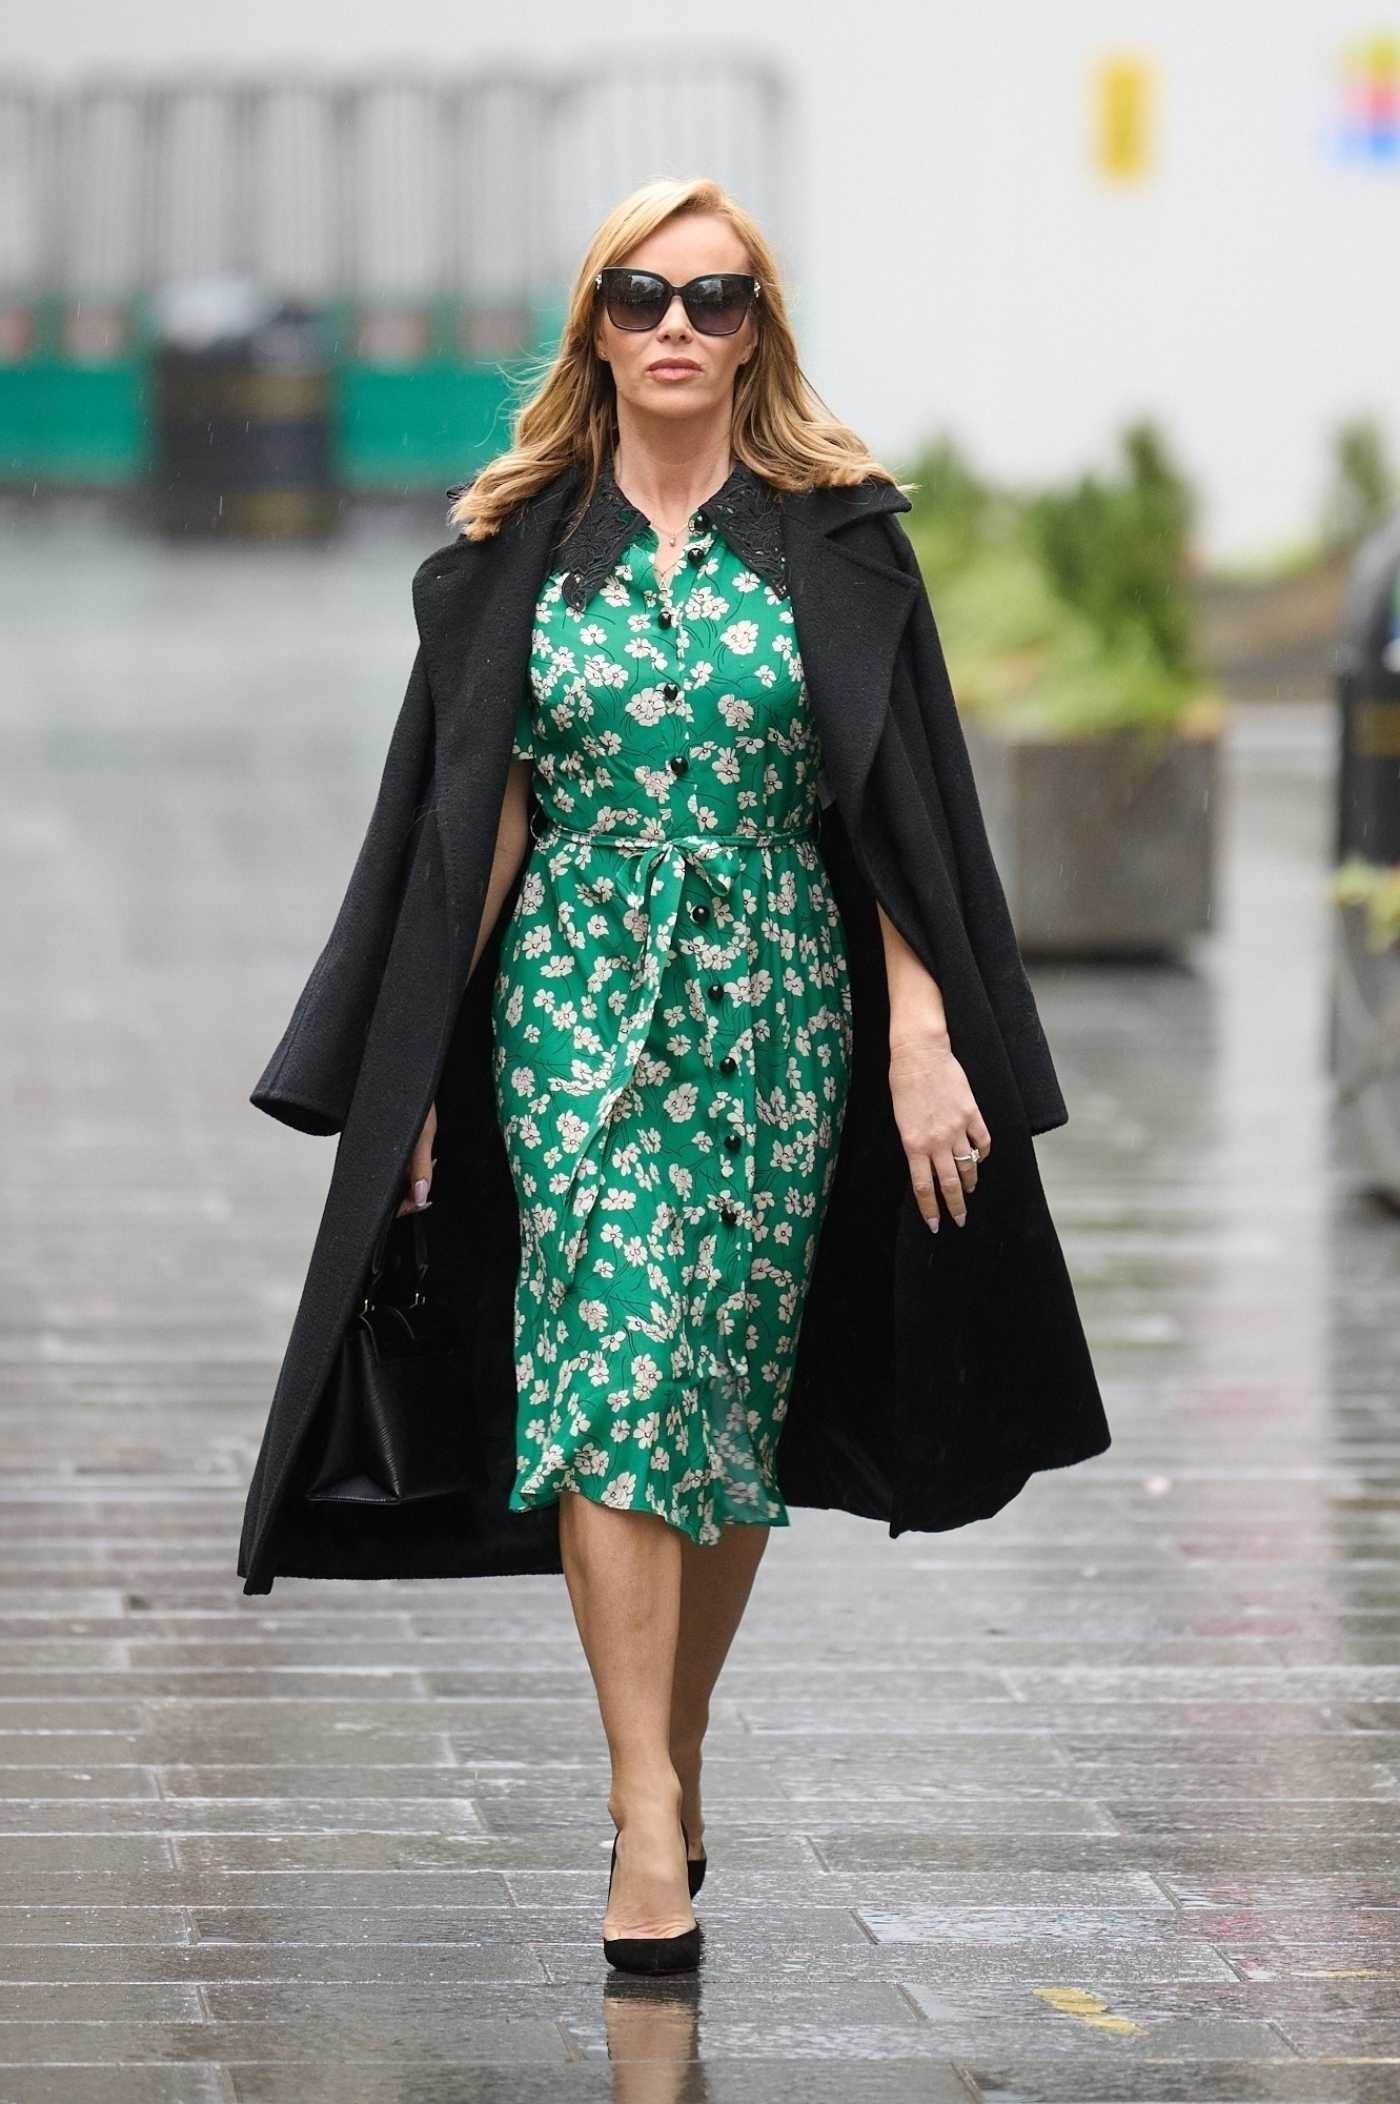 Amanda Holden in a Green Floral Dress Leaves the Global Radio Studios in Central London 02/03/2021